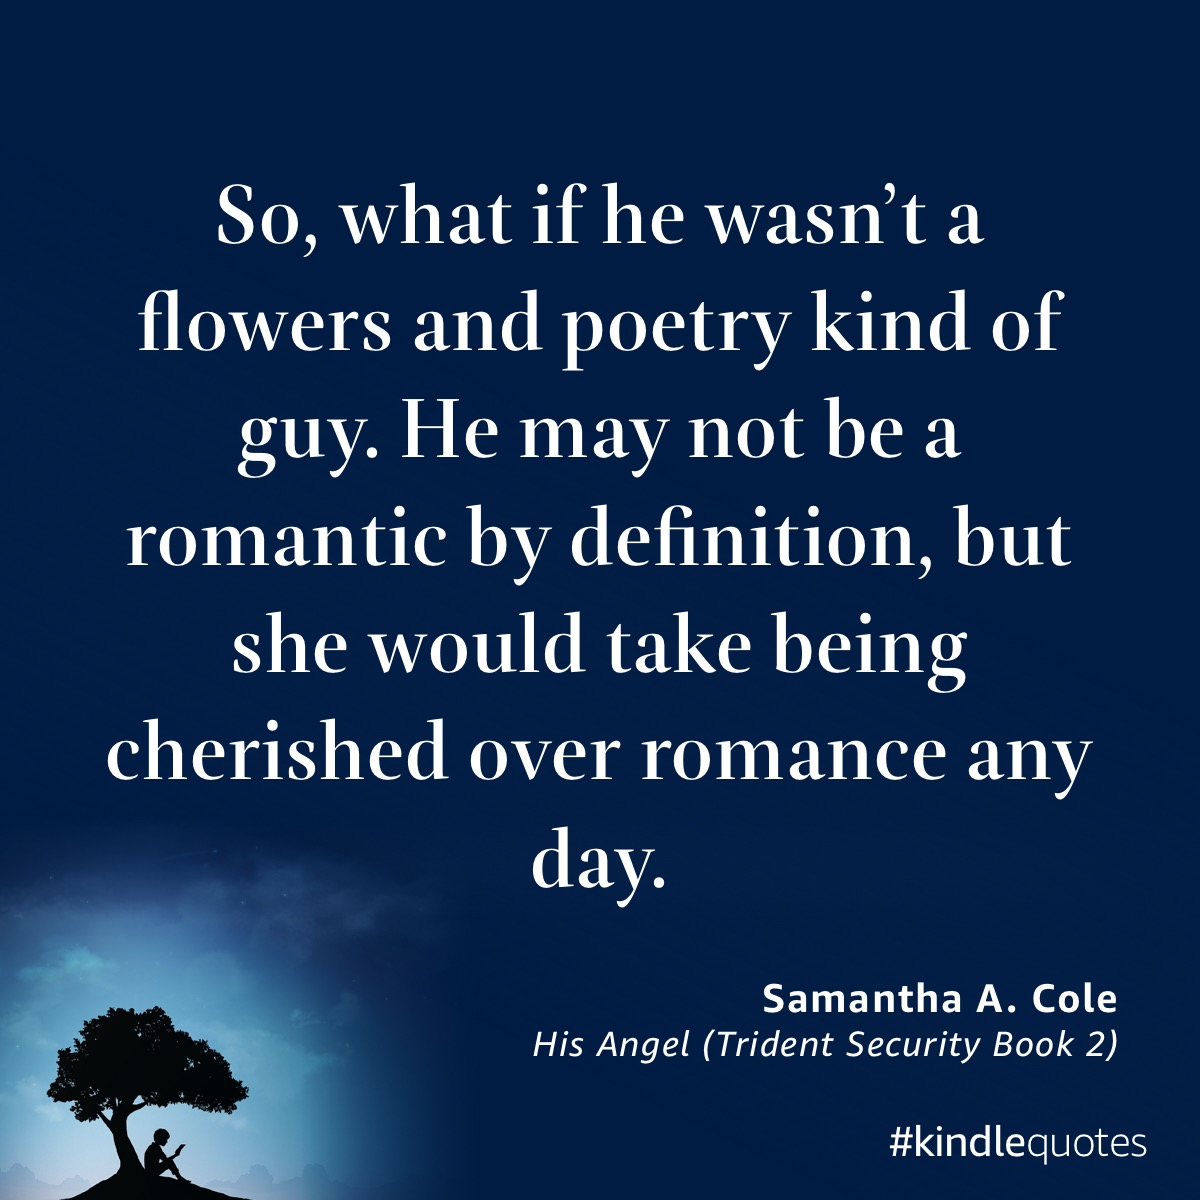 Book quote Samantha A Cole